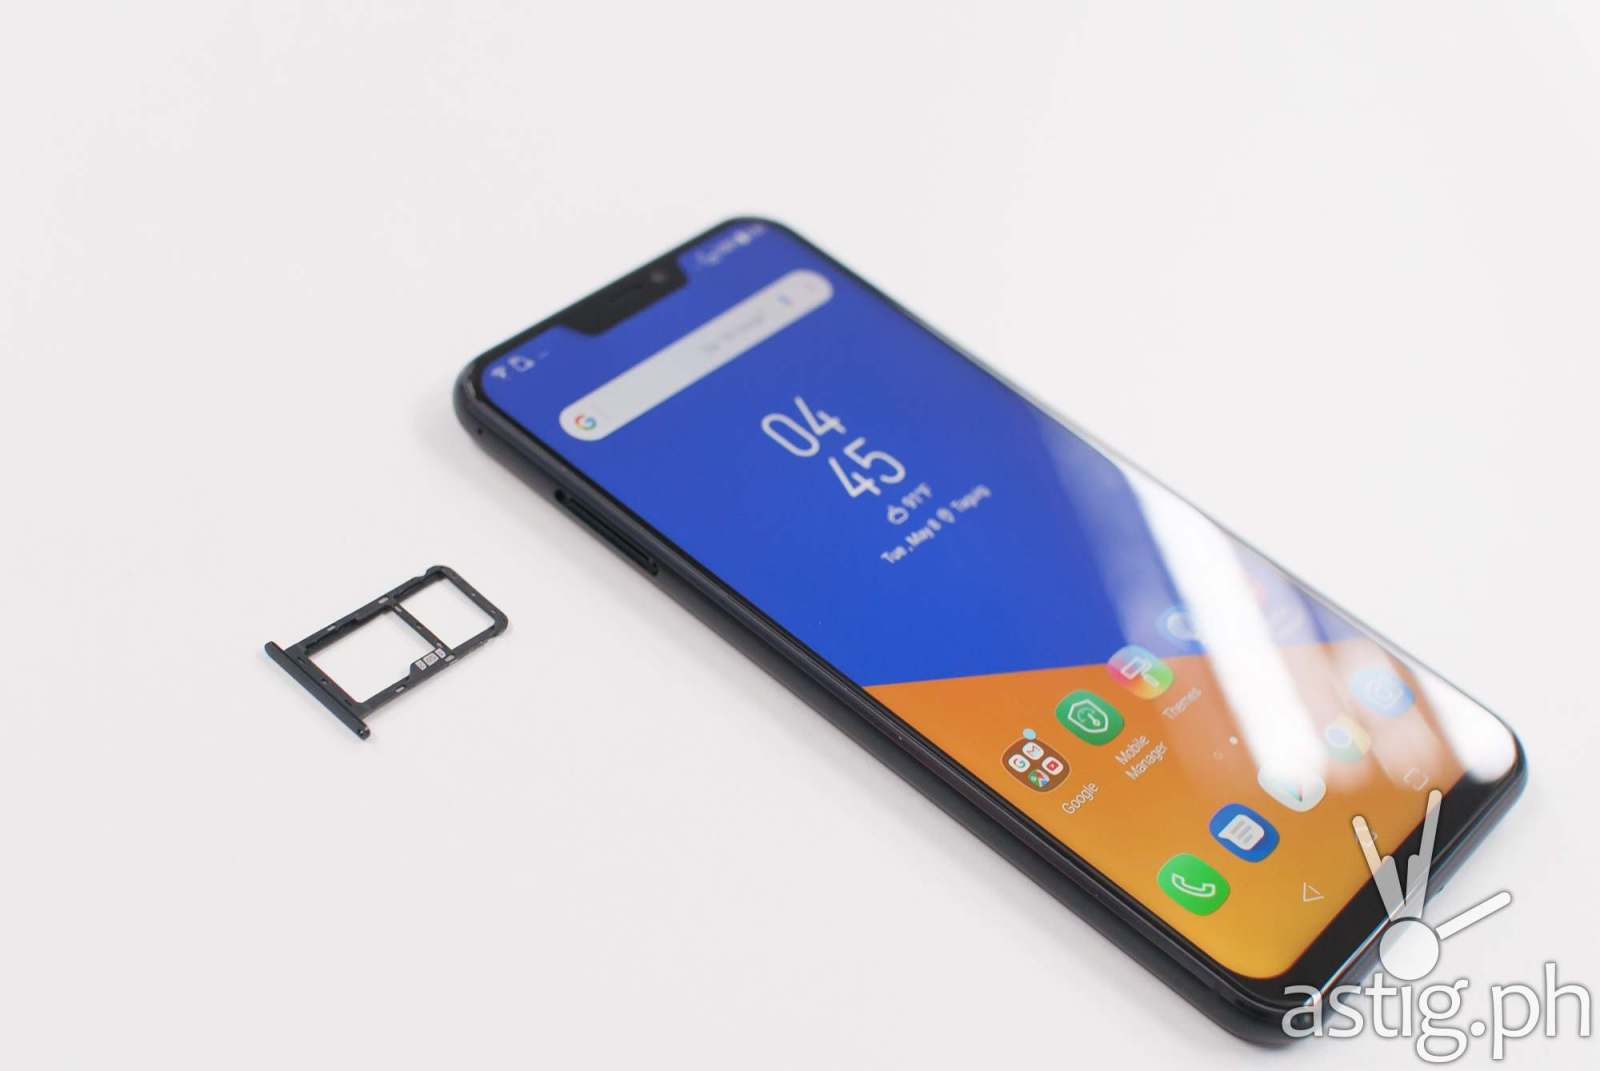 Zenfone 5 dual SIM and microSD expansion tray